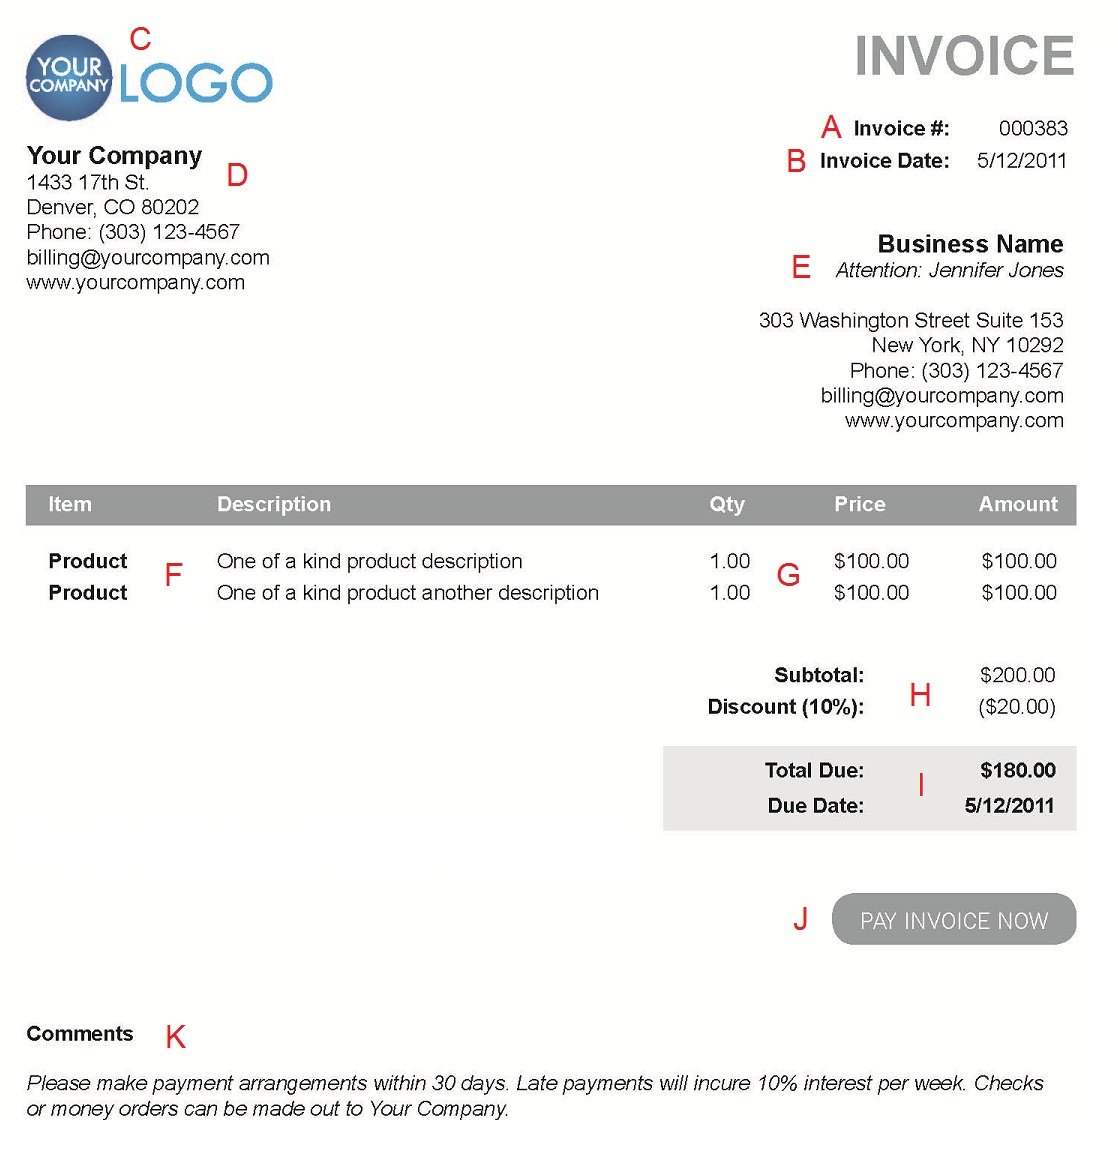 Sandiegolocksmithsus  Surprising The  Different Sections Of An Electronic Payment Invoice With Likable A  With Charming Excel Invoice Template Also Blank Invoice In Addition Simple Invoice Template And What Is A Proforma Invoice As Well As Invoice Software Additionally Paypal Invoice From Paysimplecom With Sandiegolocksmithsus  Likable The  Different Sections Of An Electronic Payment Invoice With Charming A  And Surprising Excel Invoice Template Also Blank Invoice In Addition Simple Invoice Template From Paysimplecom